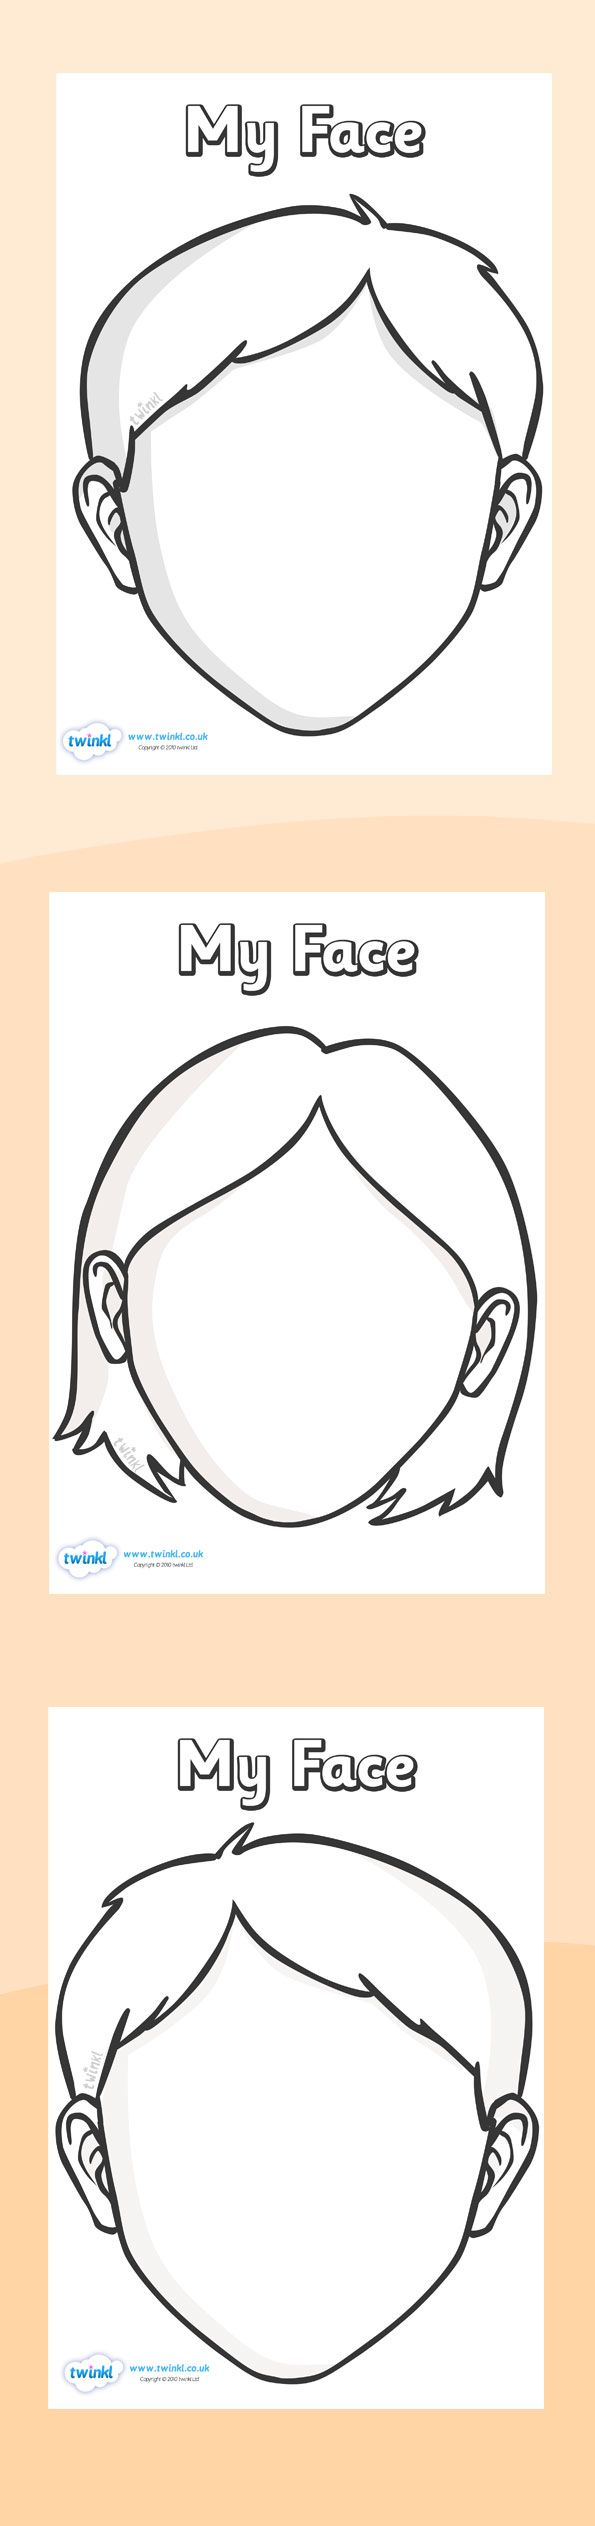 Twinkl Resources  Blank Face Templates with Face Features  Printable resources for Primary, EYFS, KS1 and SEN.  Thousands of classroom displays and teaching aids! Topics, Ourselves, Face, Templates, Features